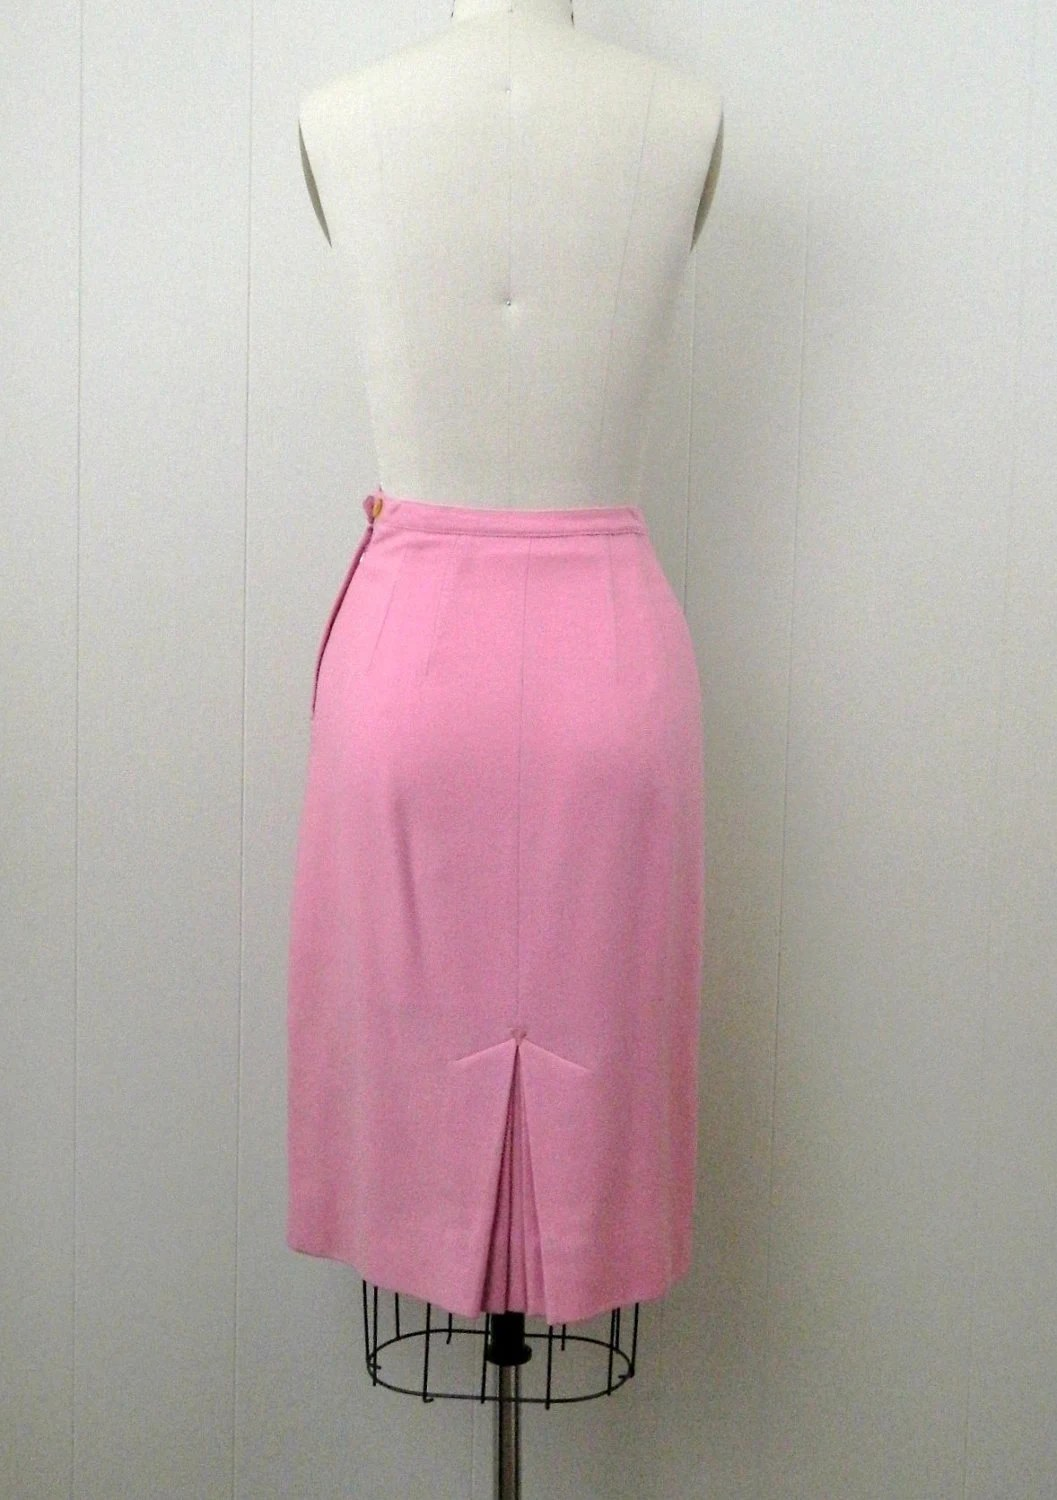 60s Secretary Pink Pencil Skirt ... Extra Small to Small ... Oragami Kick Pleat by bottleblondevintage